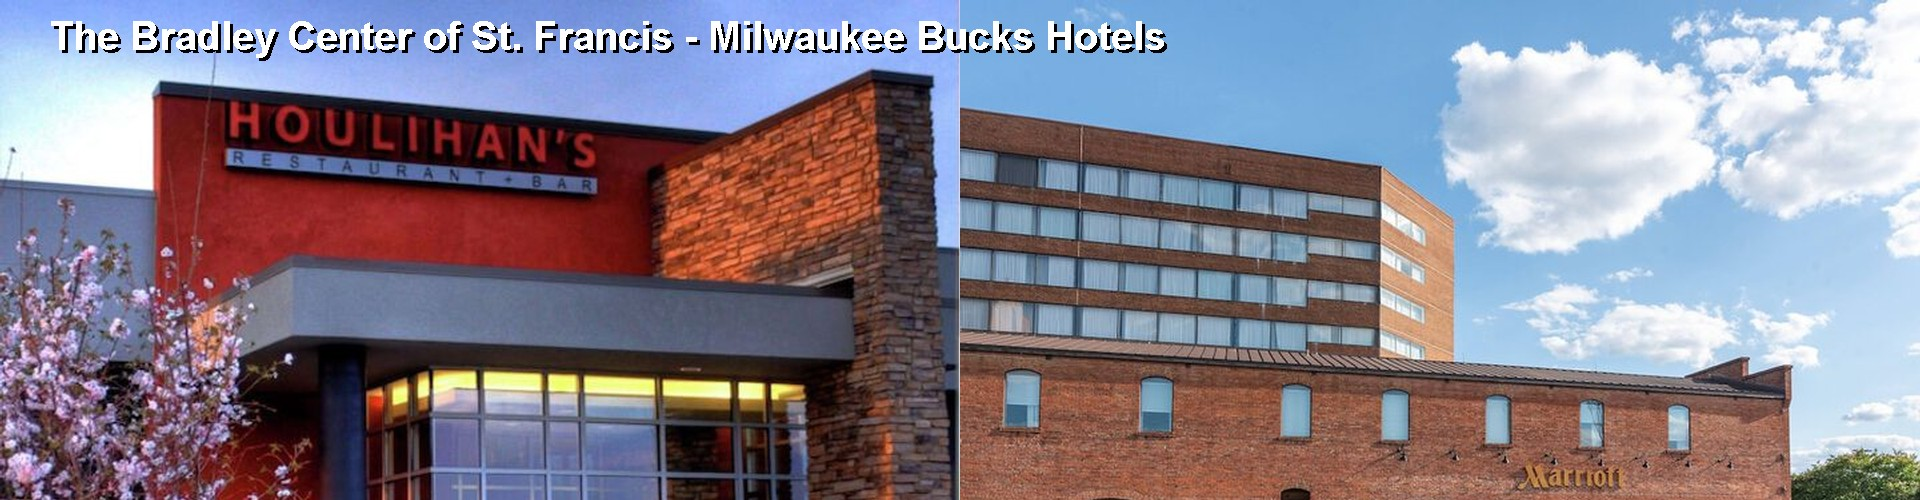 5 Best Hotels near The Bradley Center of St. Francis - Milwaukee Bucks